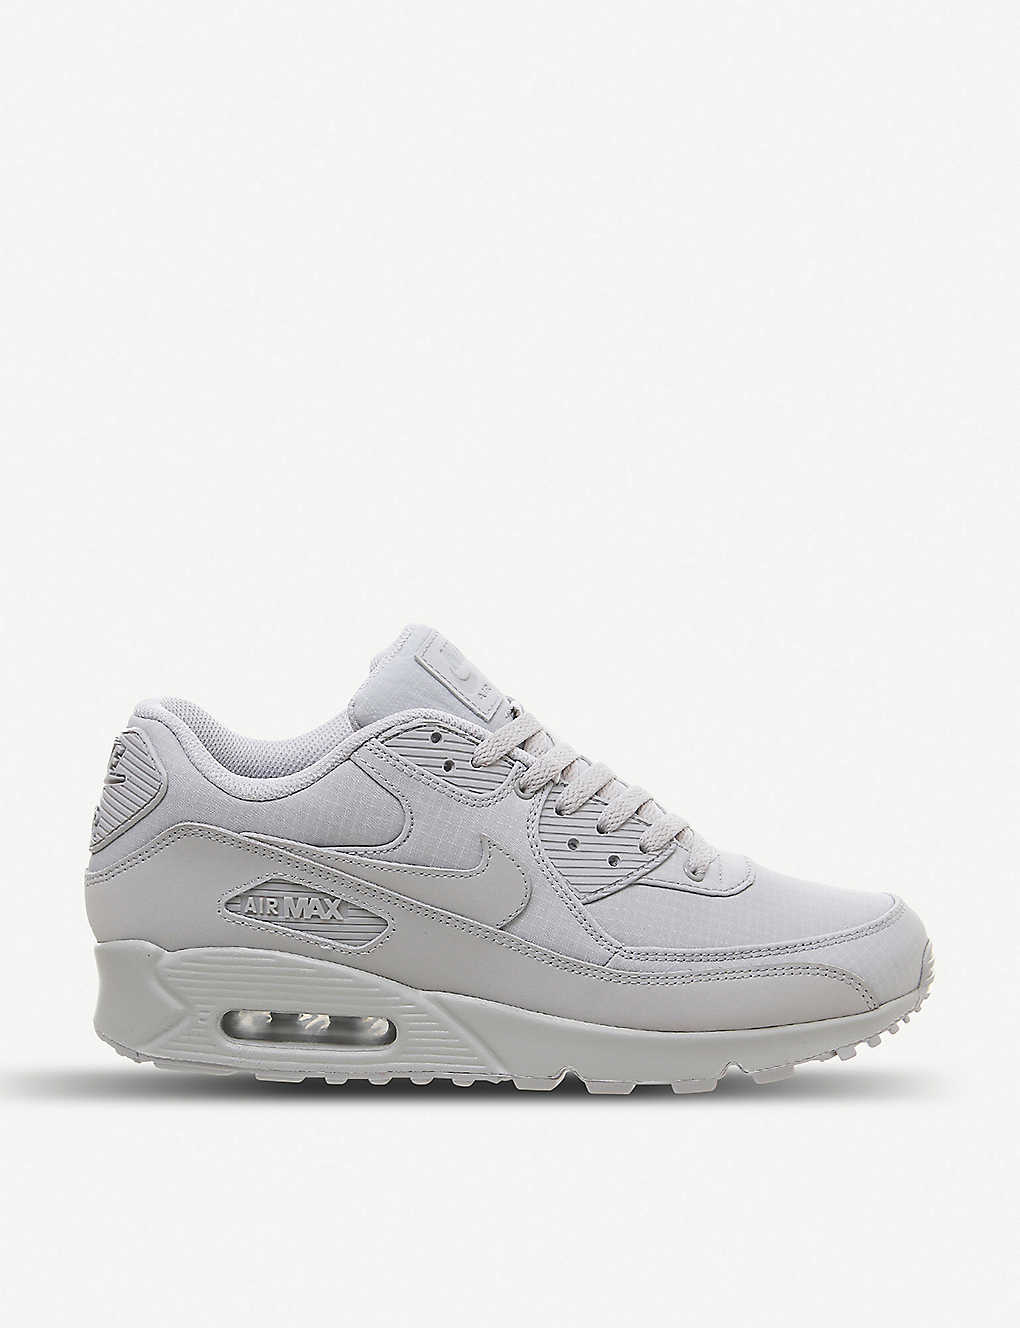 meilleure sélection a05b8 19d23 Air Max 90 leather and mesh trainers